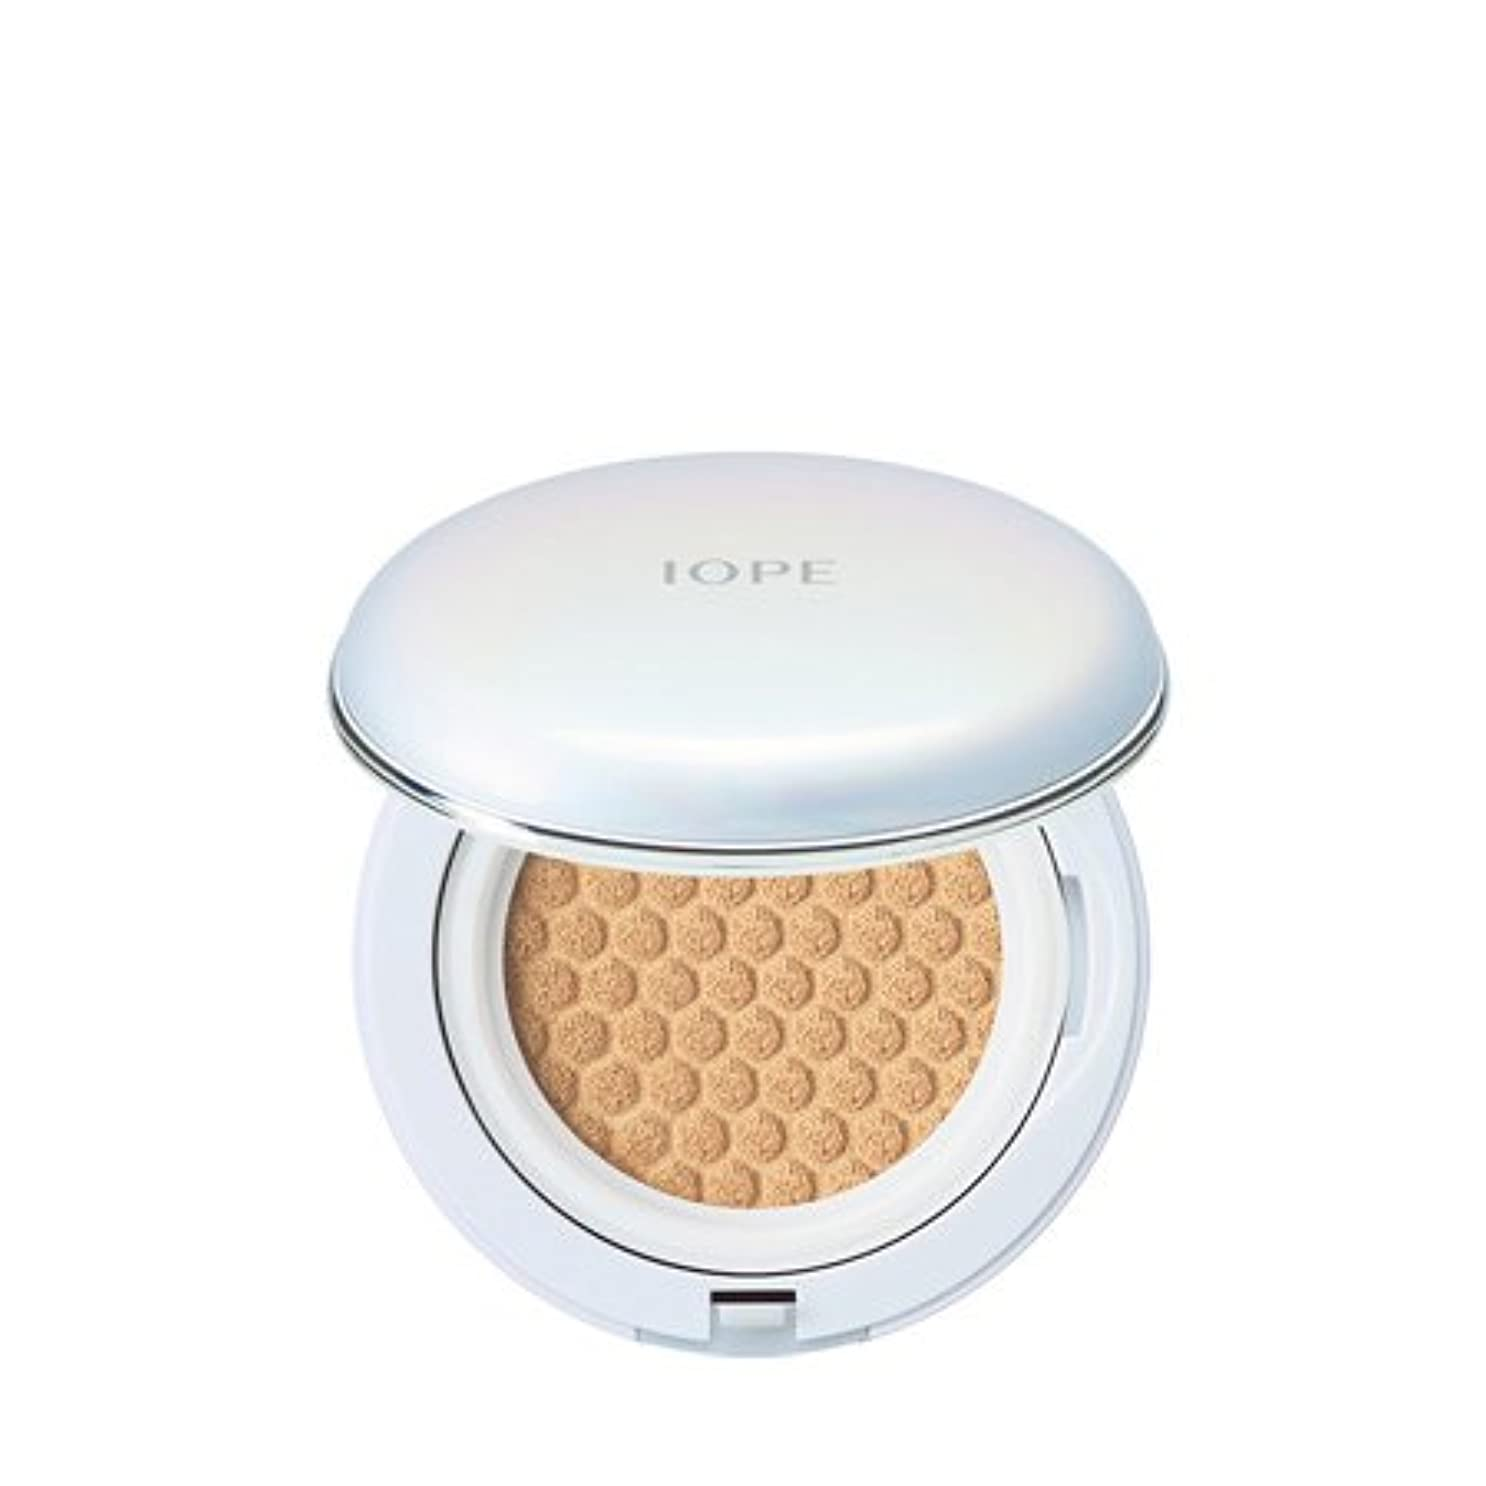 [2017 All New] IOPE Air Cushion * Cover * 15g + Refill 15g/アイオペ エア クッション * カバー * 15g + リフィル 15g (#23 Beige) [並行輸入品]